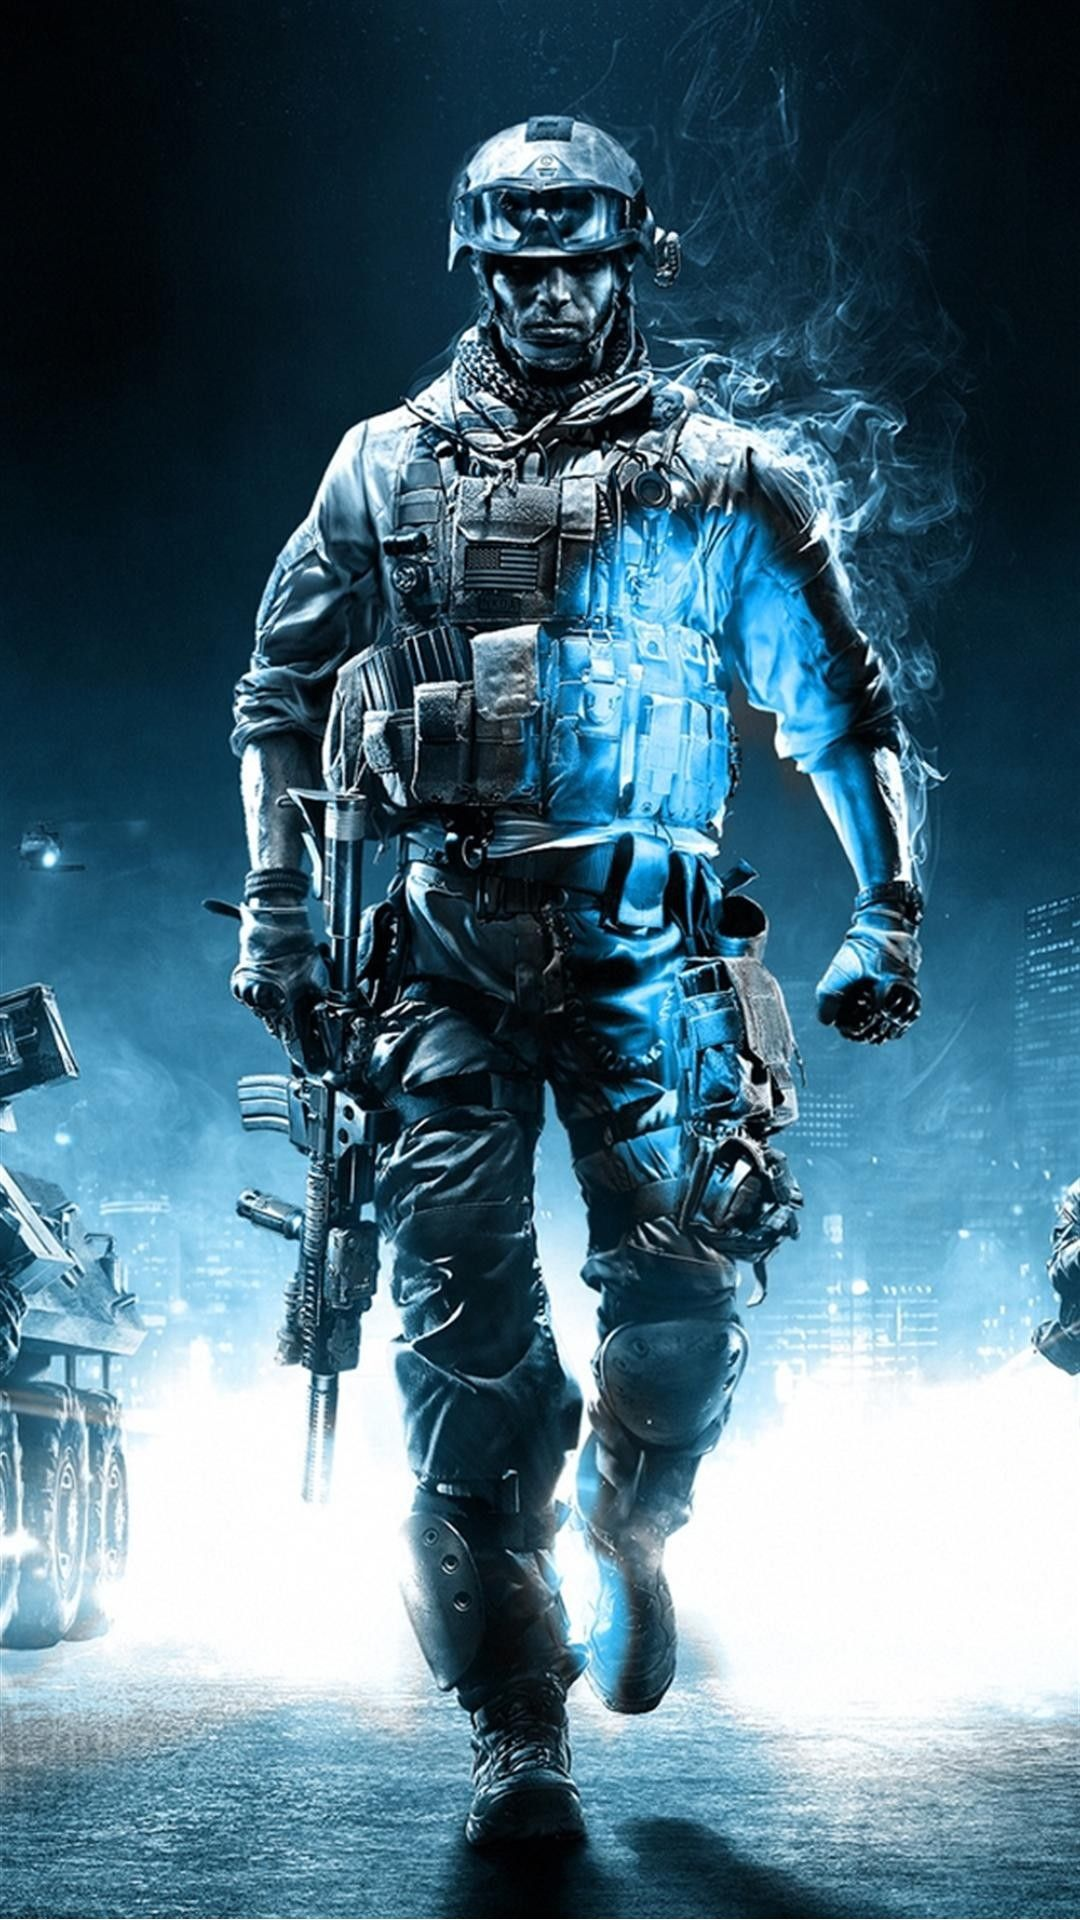 Call of Duty iPhone Wallpapers   Top Call of Duty iPhone 1080x1920